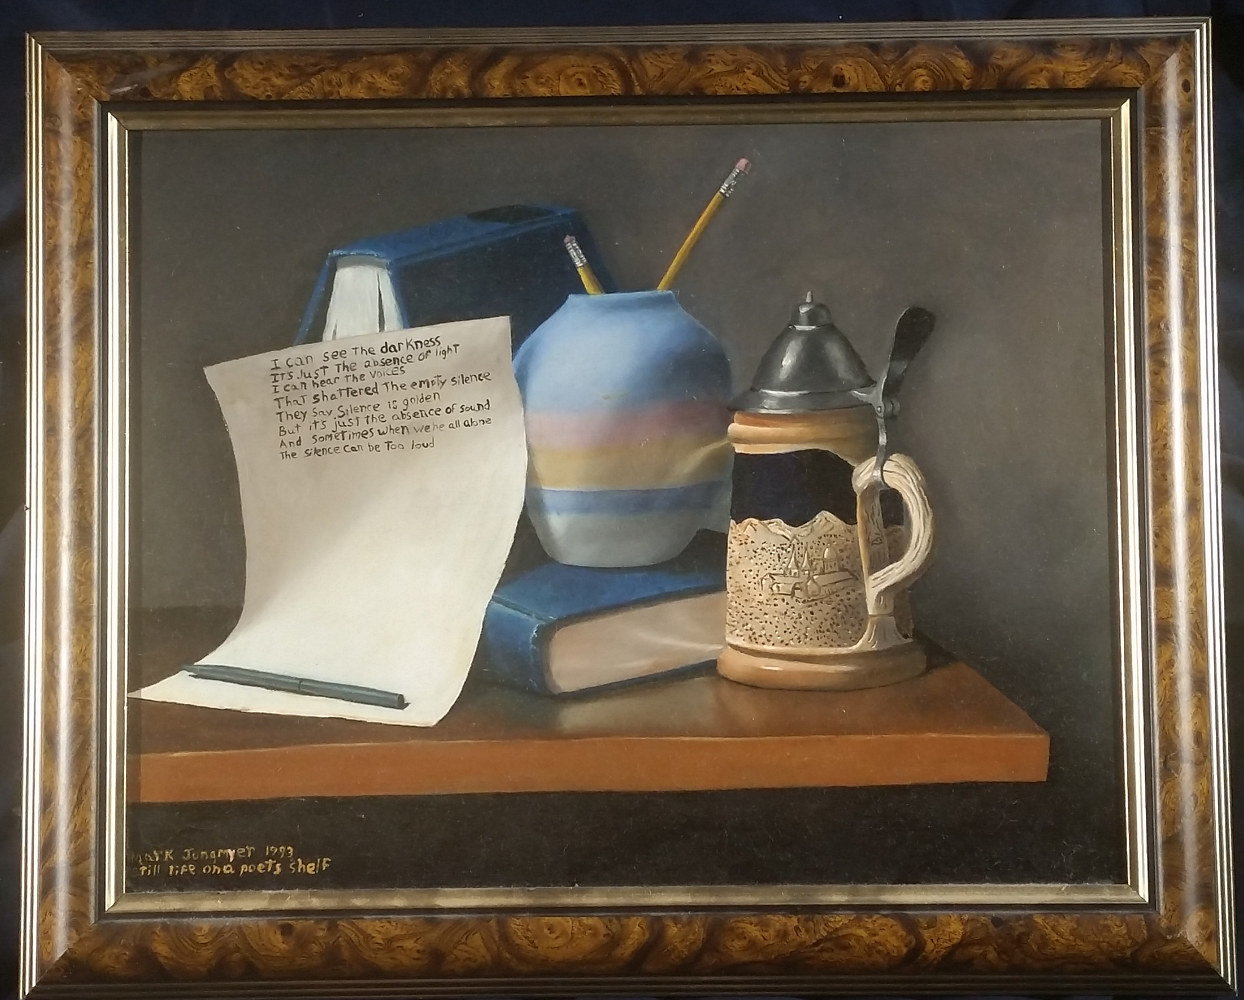 Still Life on a Poet's Shelf by Mark Jungmeyer